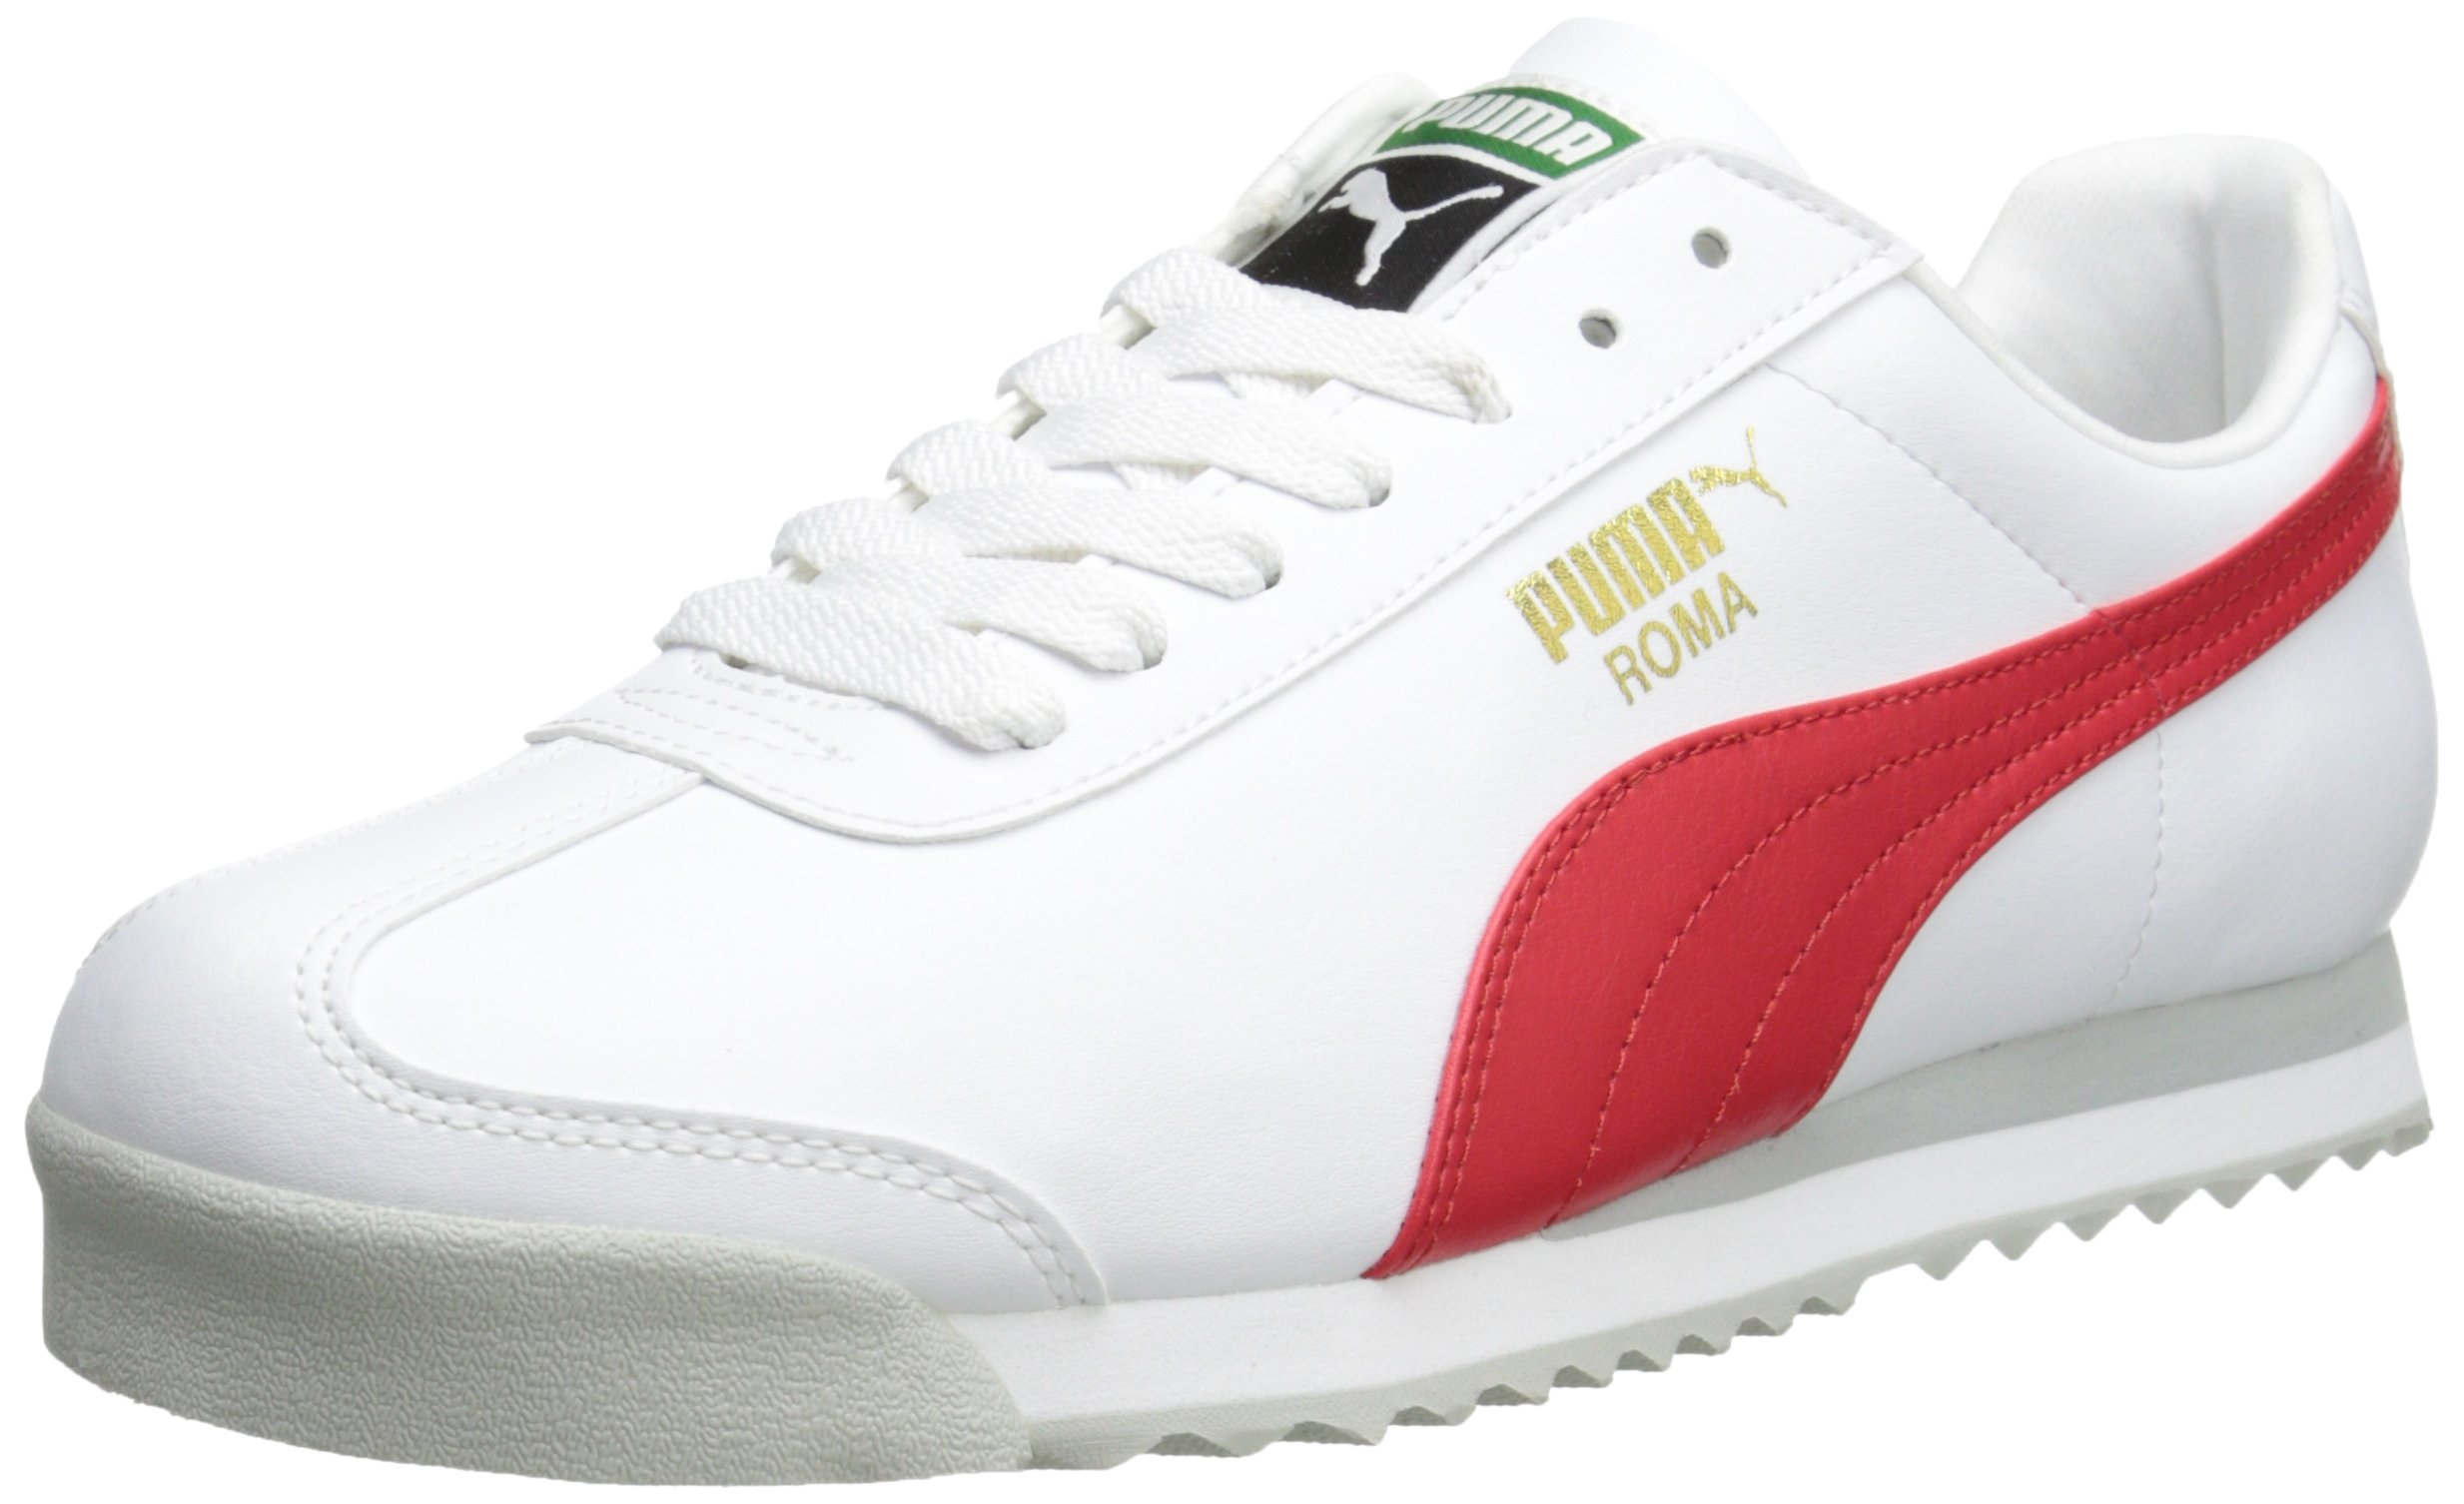 PUMA Men's Roma Basic Fashion Sneaker, White/High Risk Red/White - 9 D(M) US by PUMA